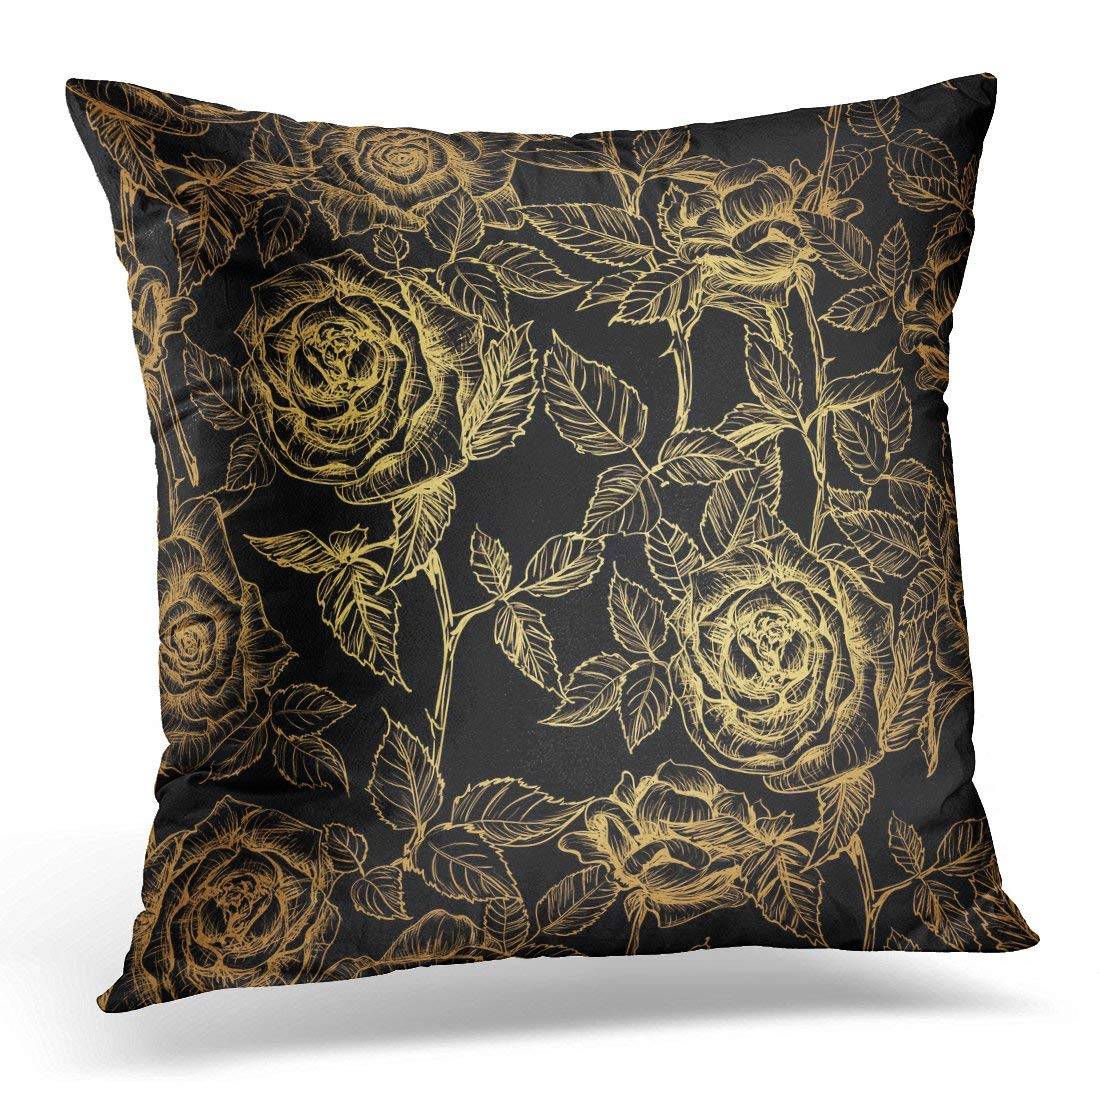 USART Throw Pillow Case Cushion Cover Gatsby Gold Elegant of Roses and Petals in Old Engraving Style on Black Garden Pillow Cover 18x18 Inches